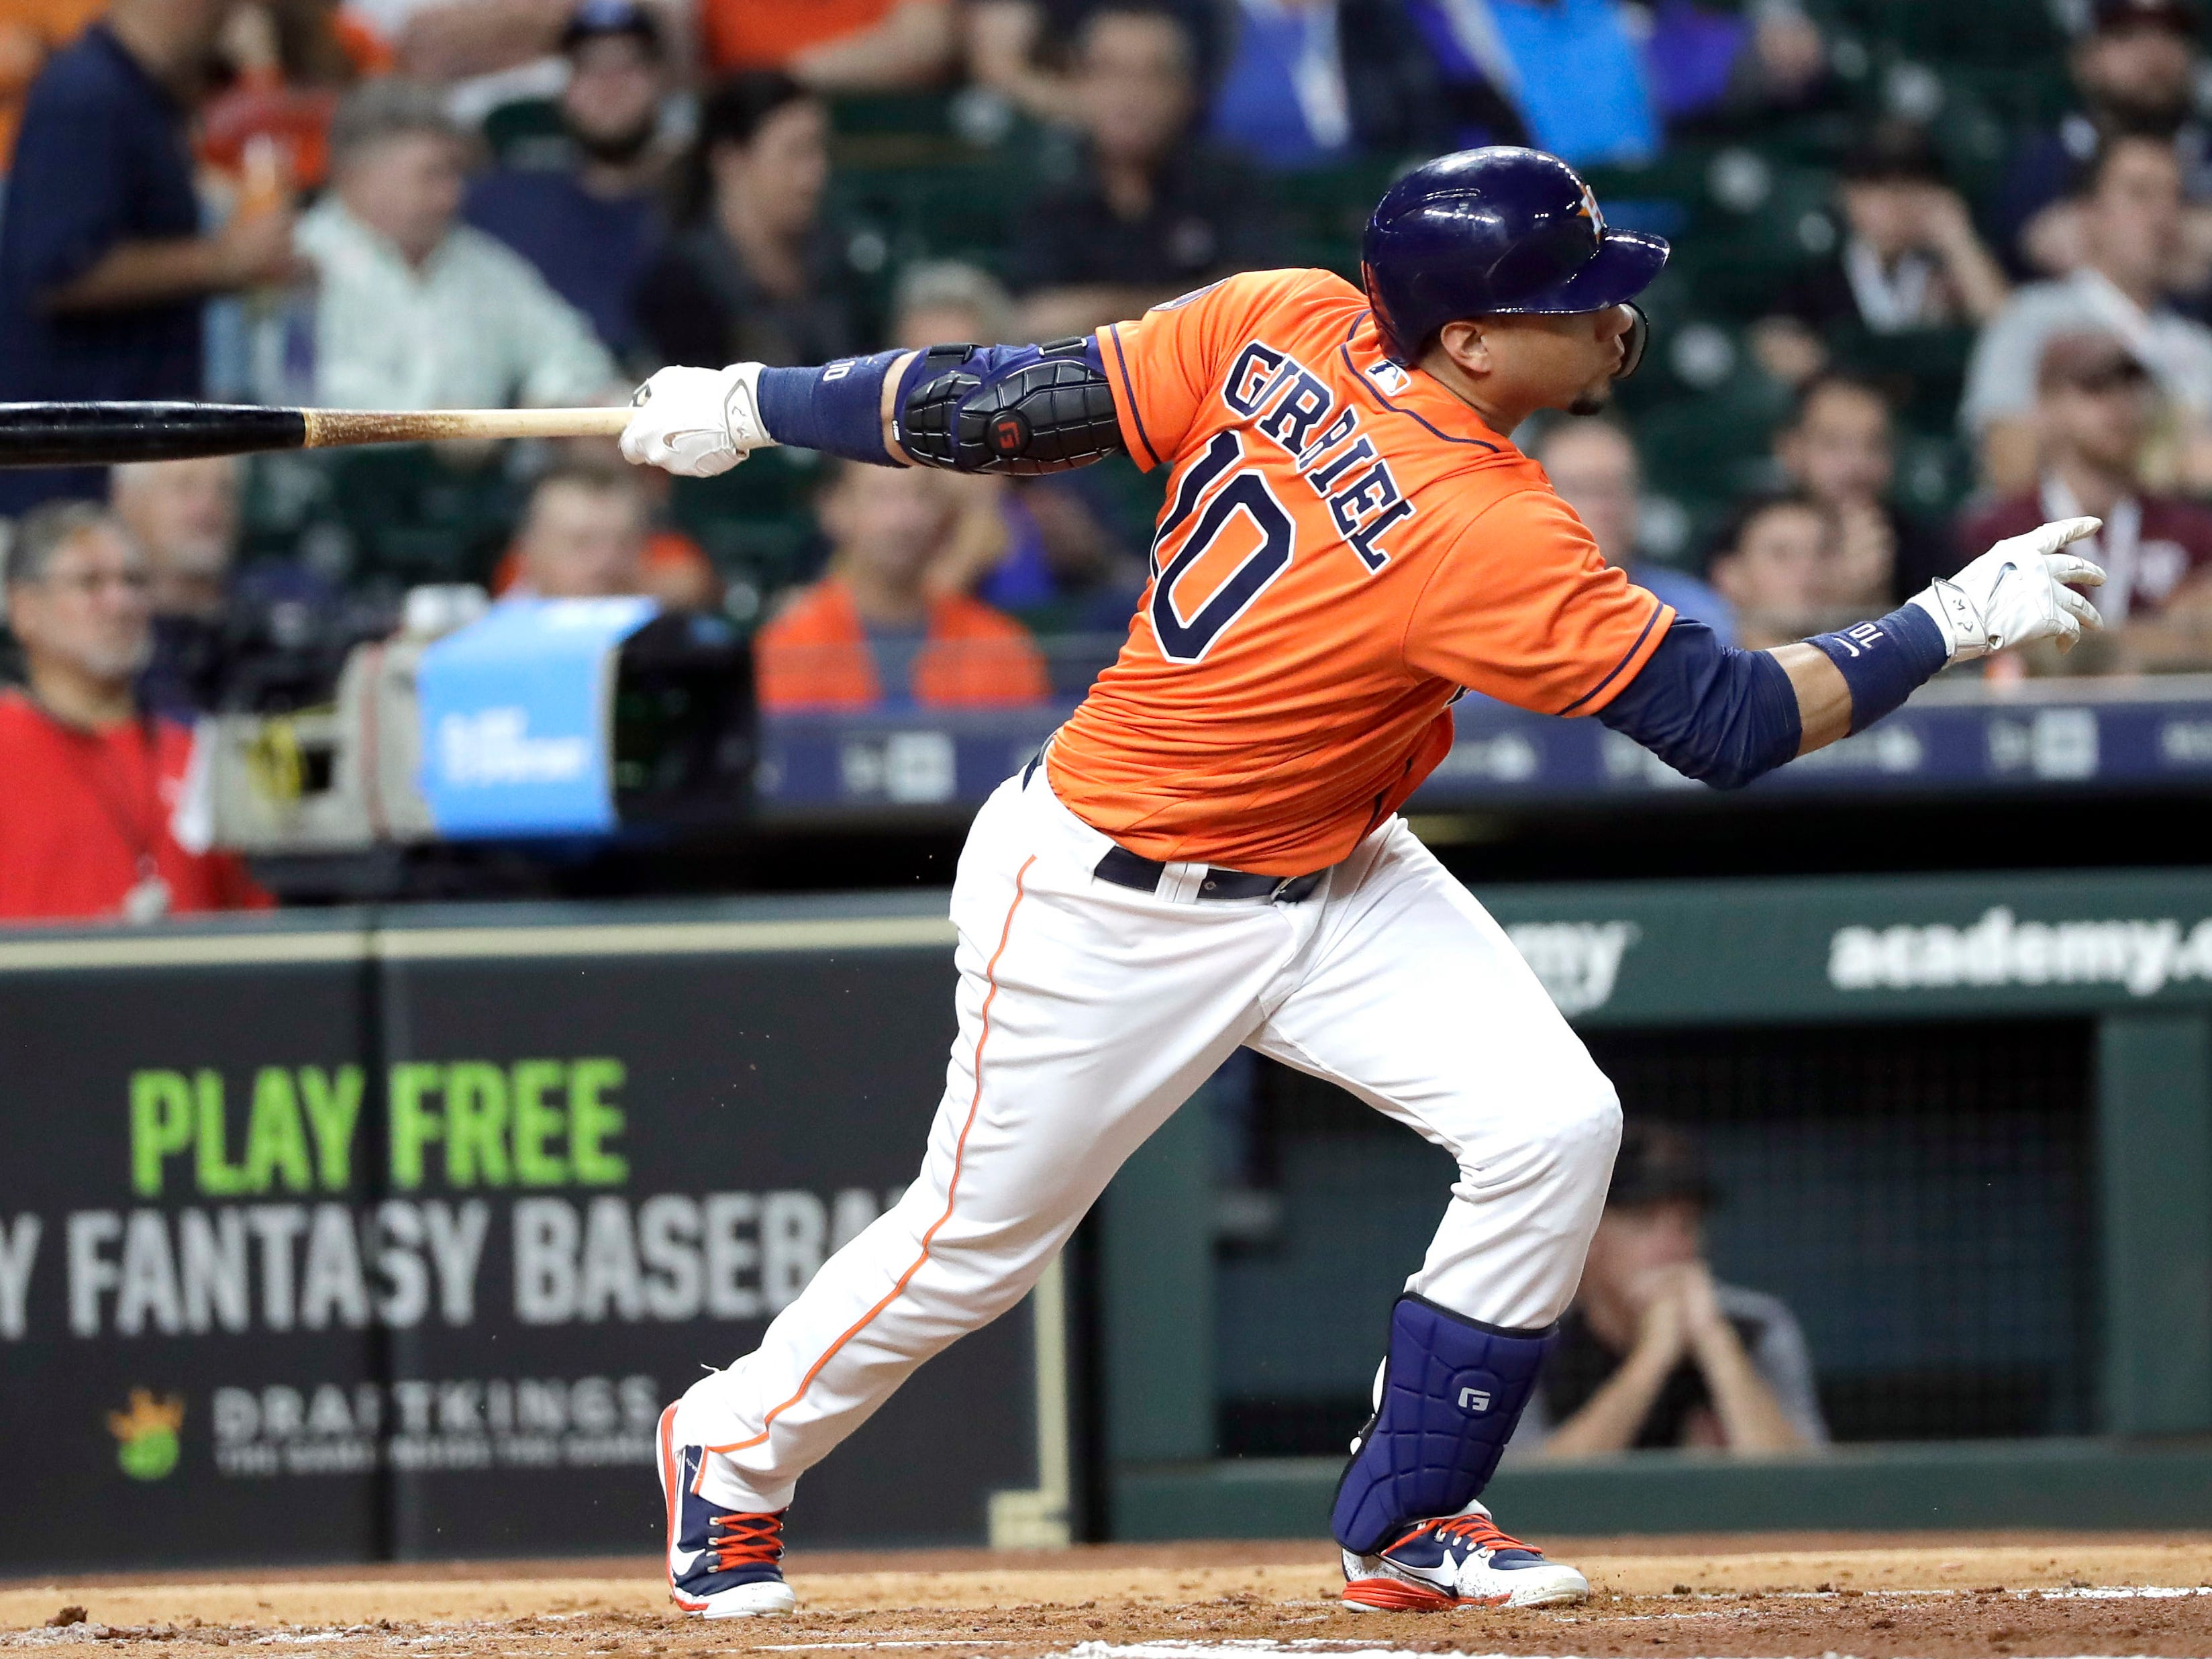 Houston Astros' Yuli Gurriel hits an RBI single against the Arizona Diamondbacks during the first inning of a baseball game Friday, Sept. 14, 2018, in Houston.